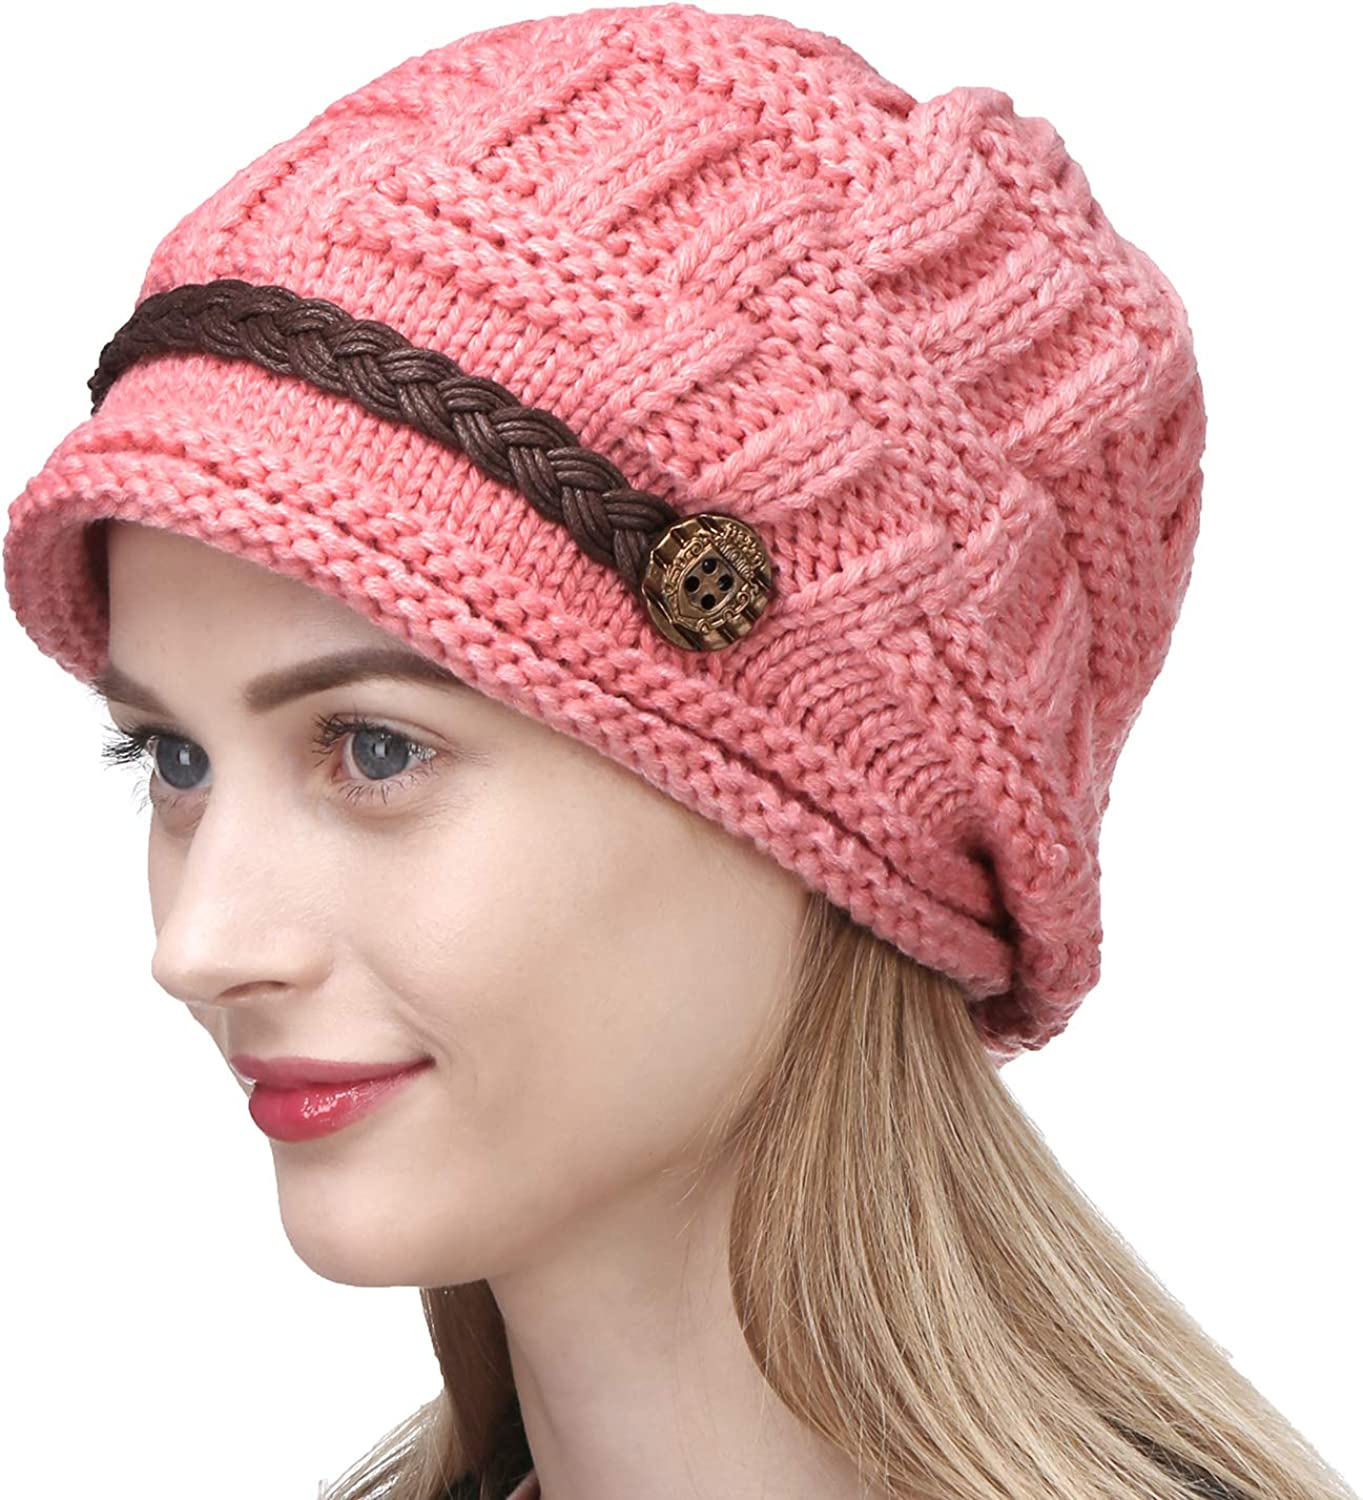 Women Winter Warm Knit Hat OBO Bands Wool Snow Ski Caps With Visor Hats